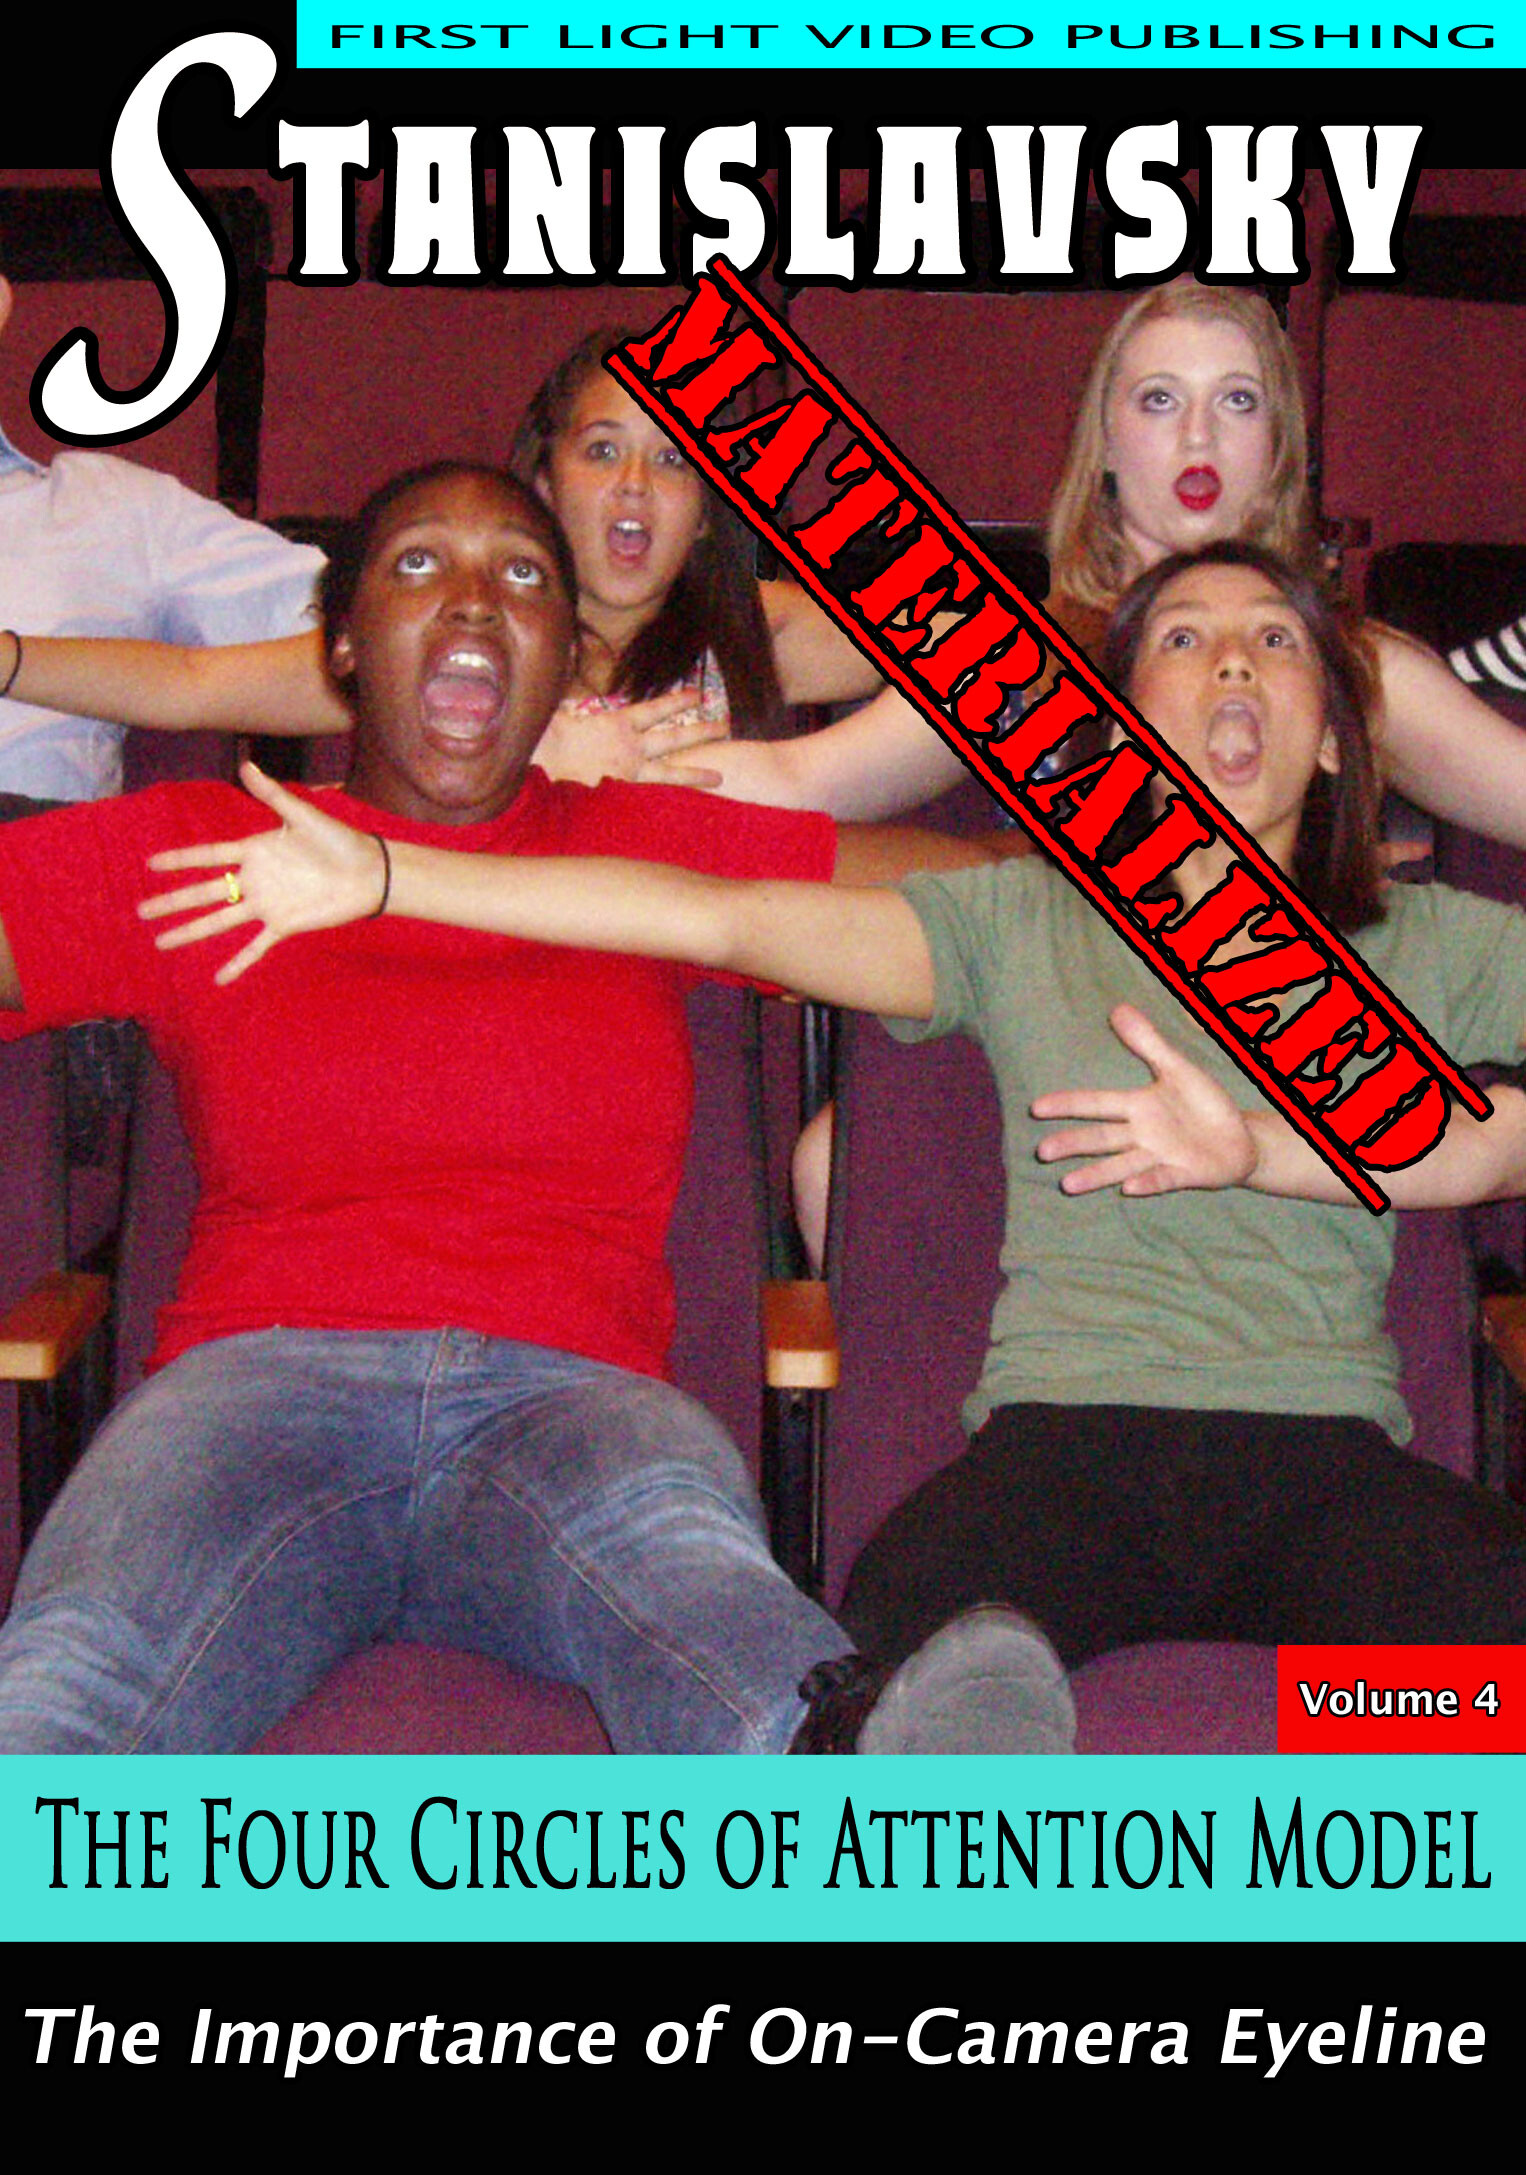 F2692 - The Four Circles of Attention Model